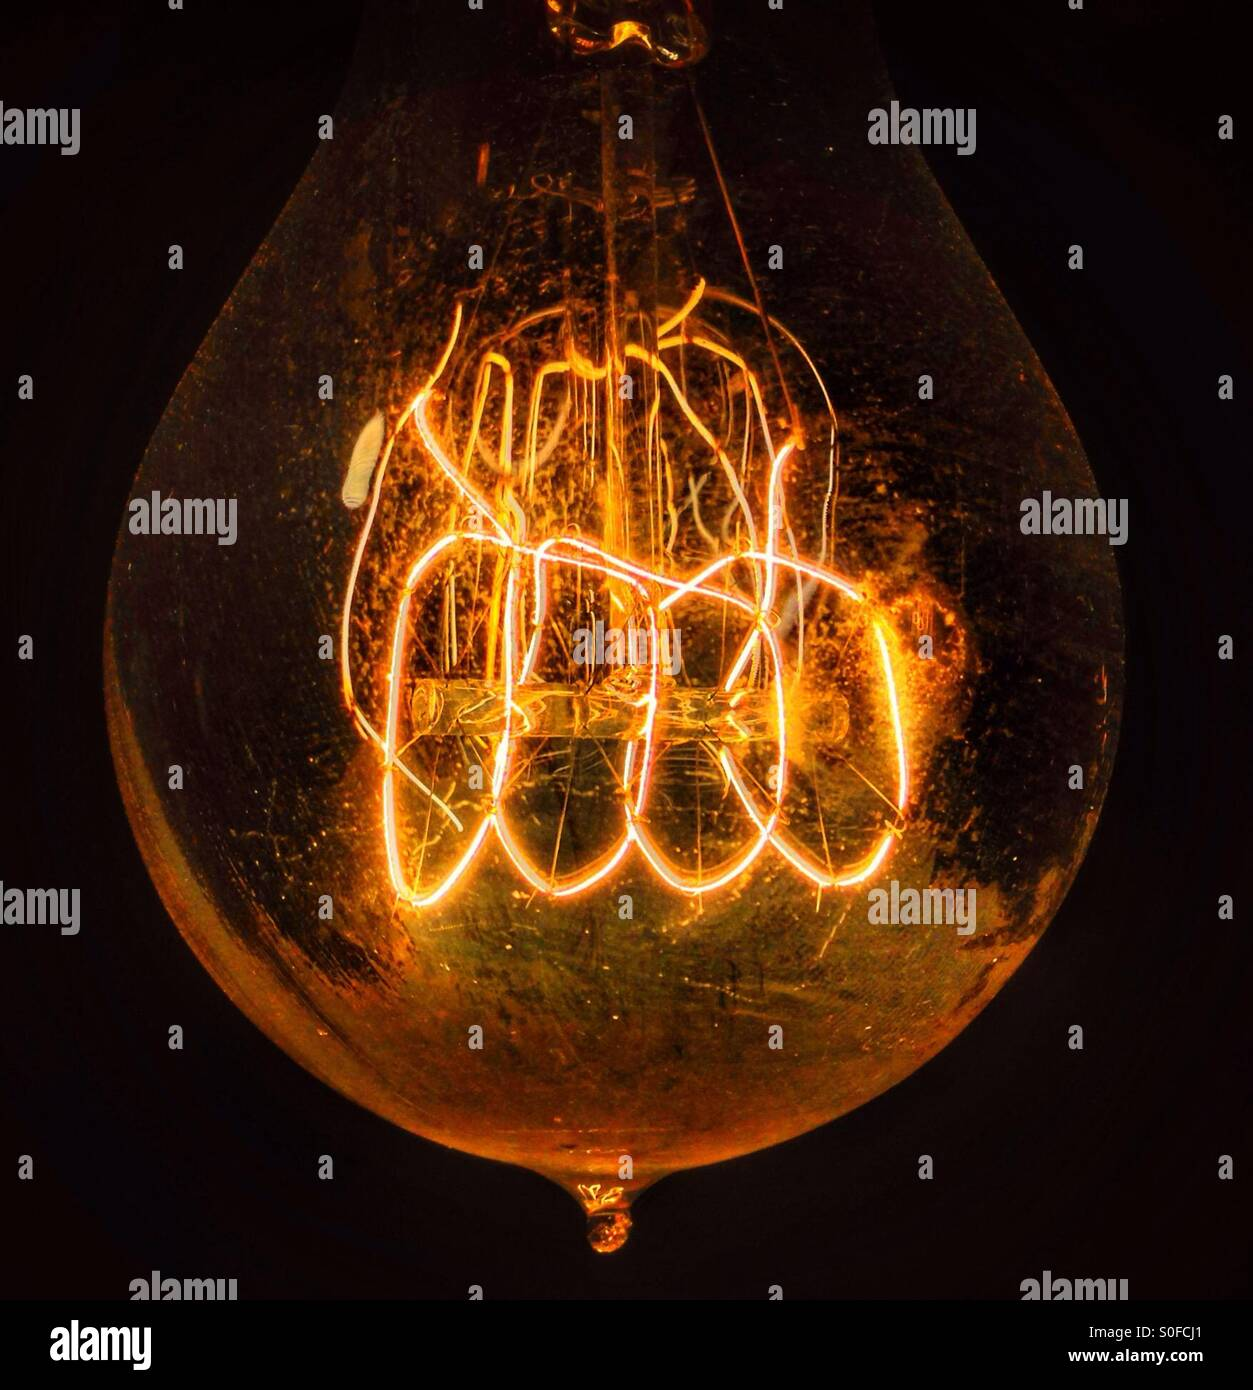 The coil of a burning lightbulb is seen. - Stock Image